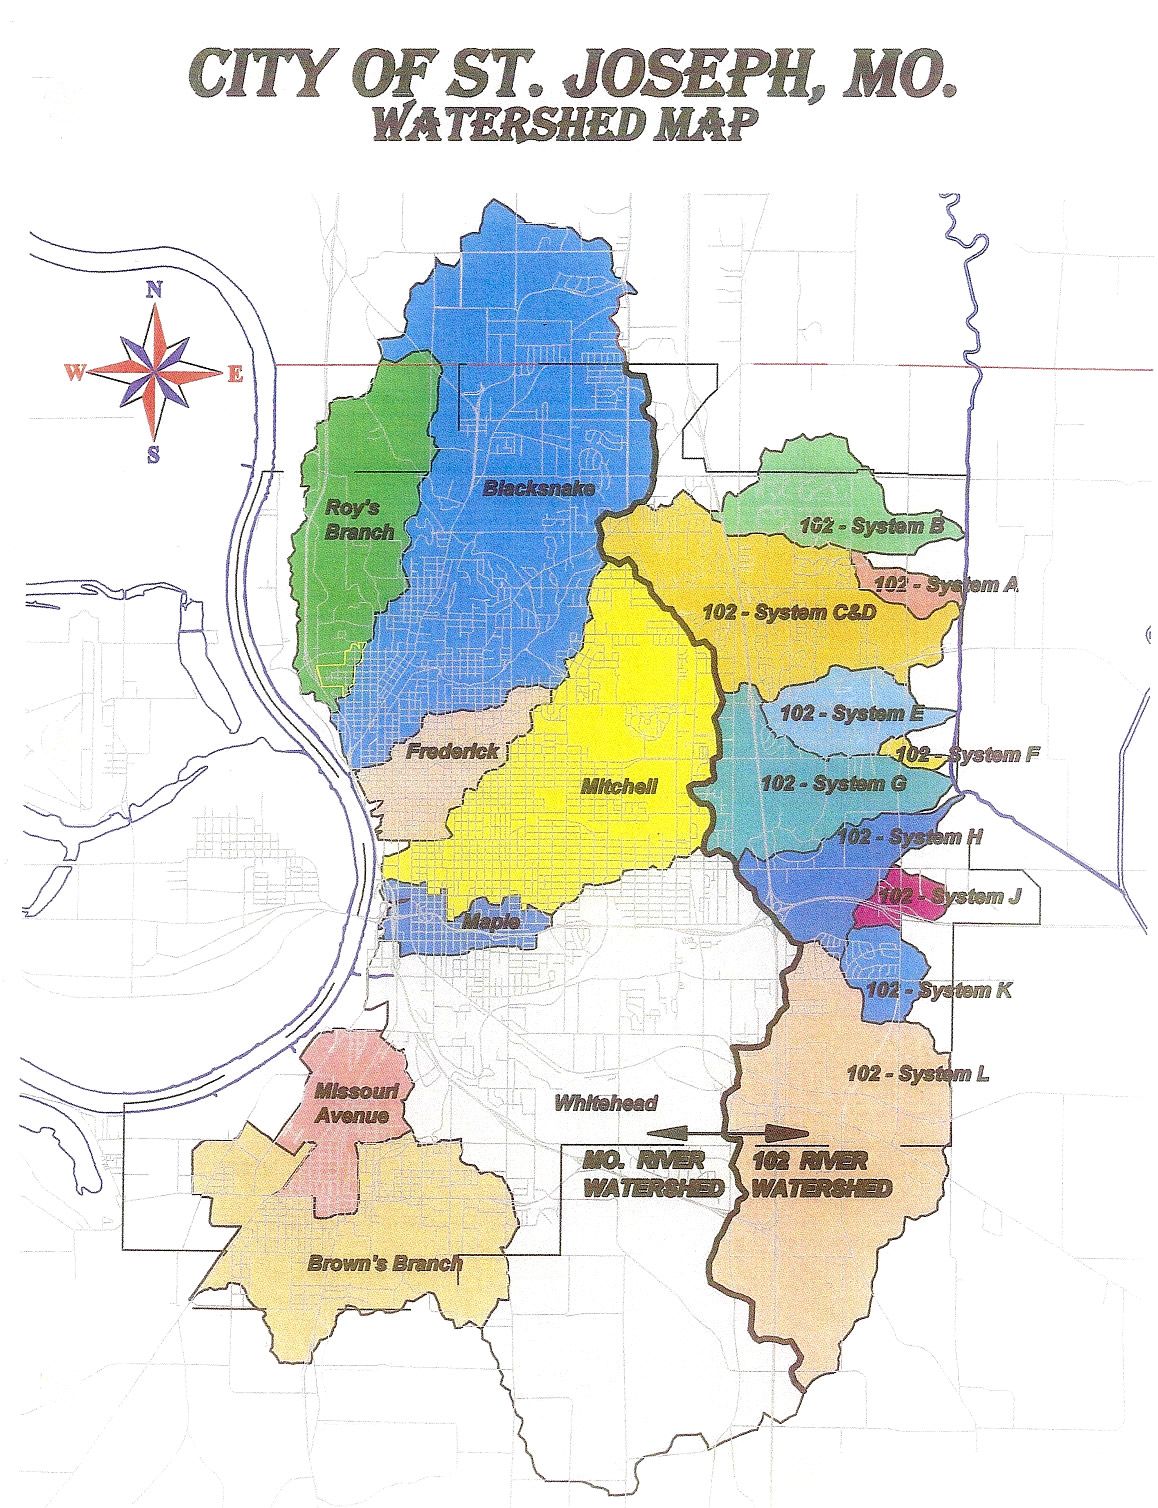 St Joseph MO Official Website Charts Maps Diagrams - Map mo